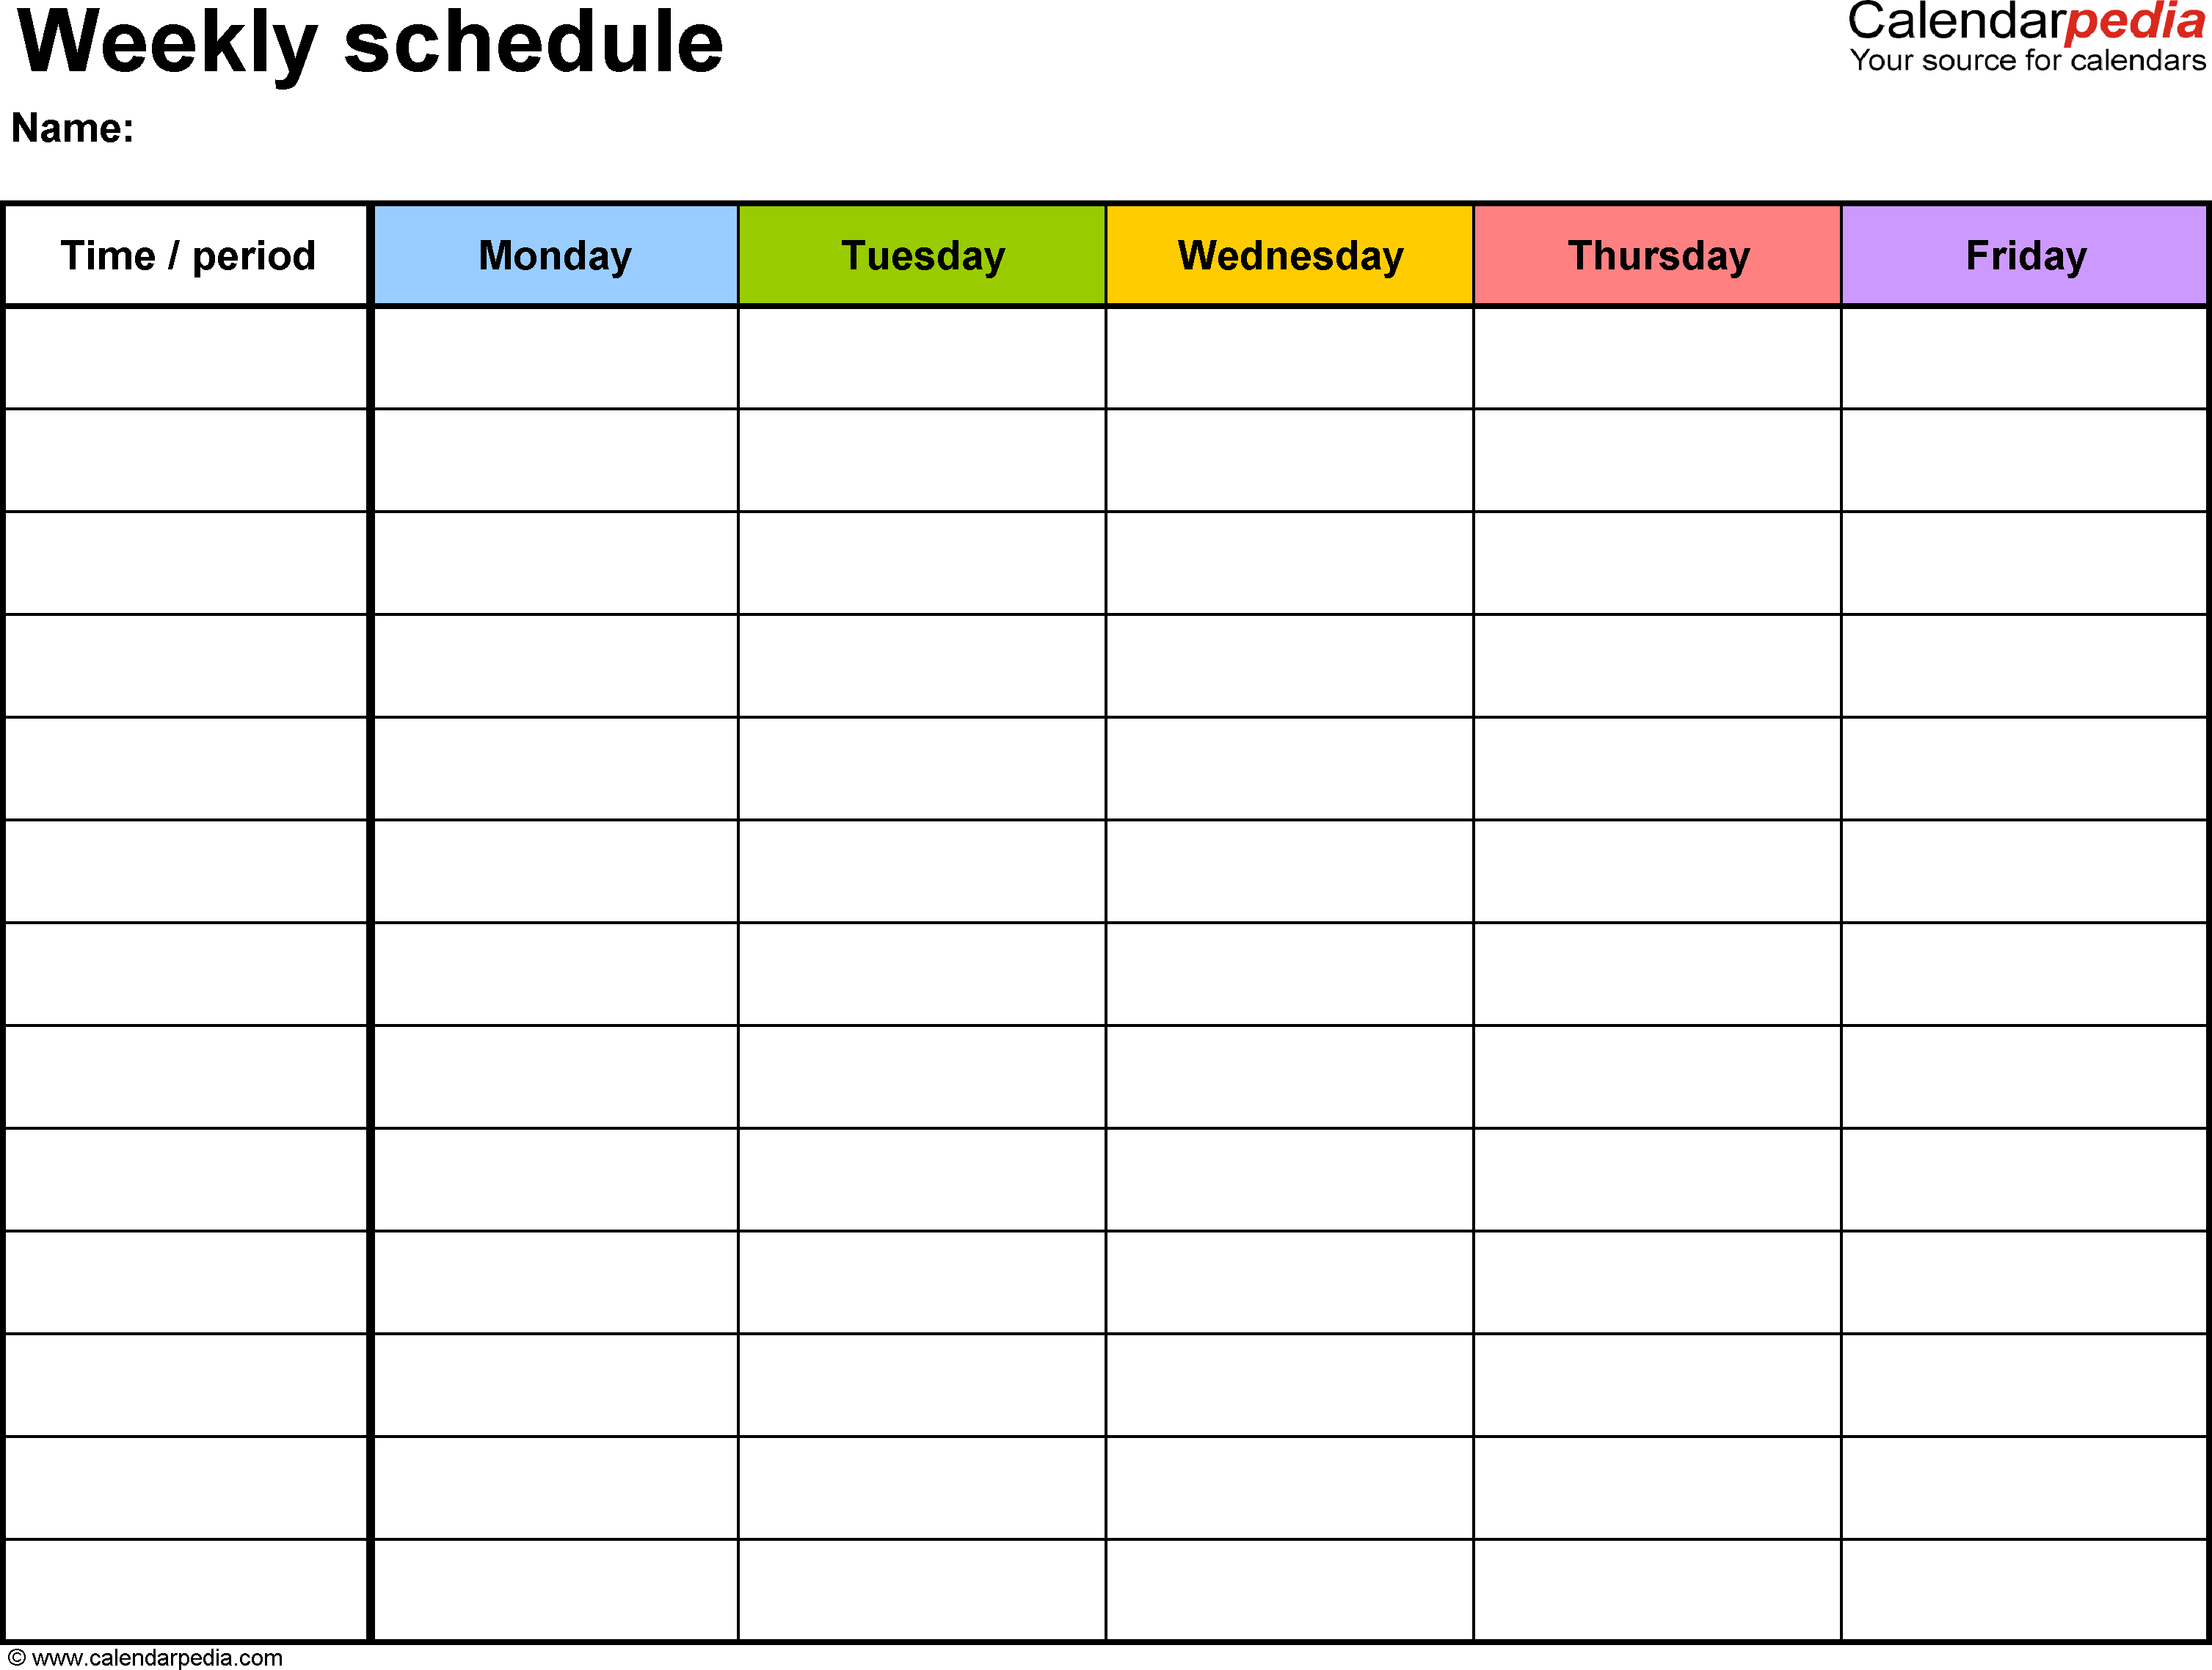 Free Weekly Schedule Templates For Word - 18 Templates throughout Cute Blank Monthly Calendar Template